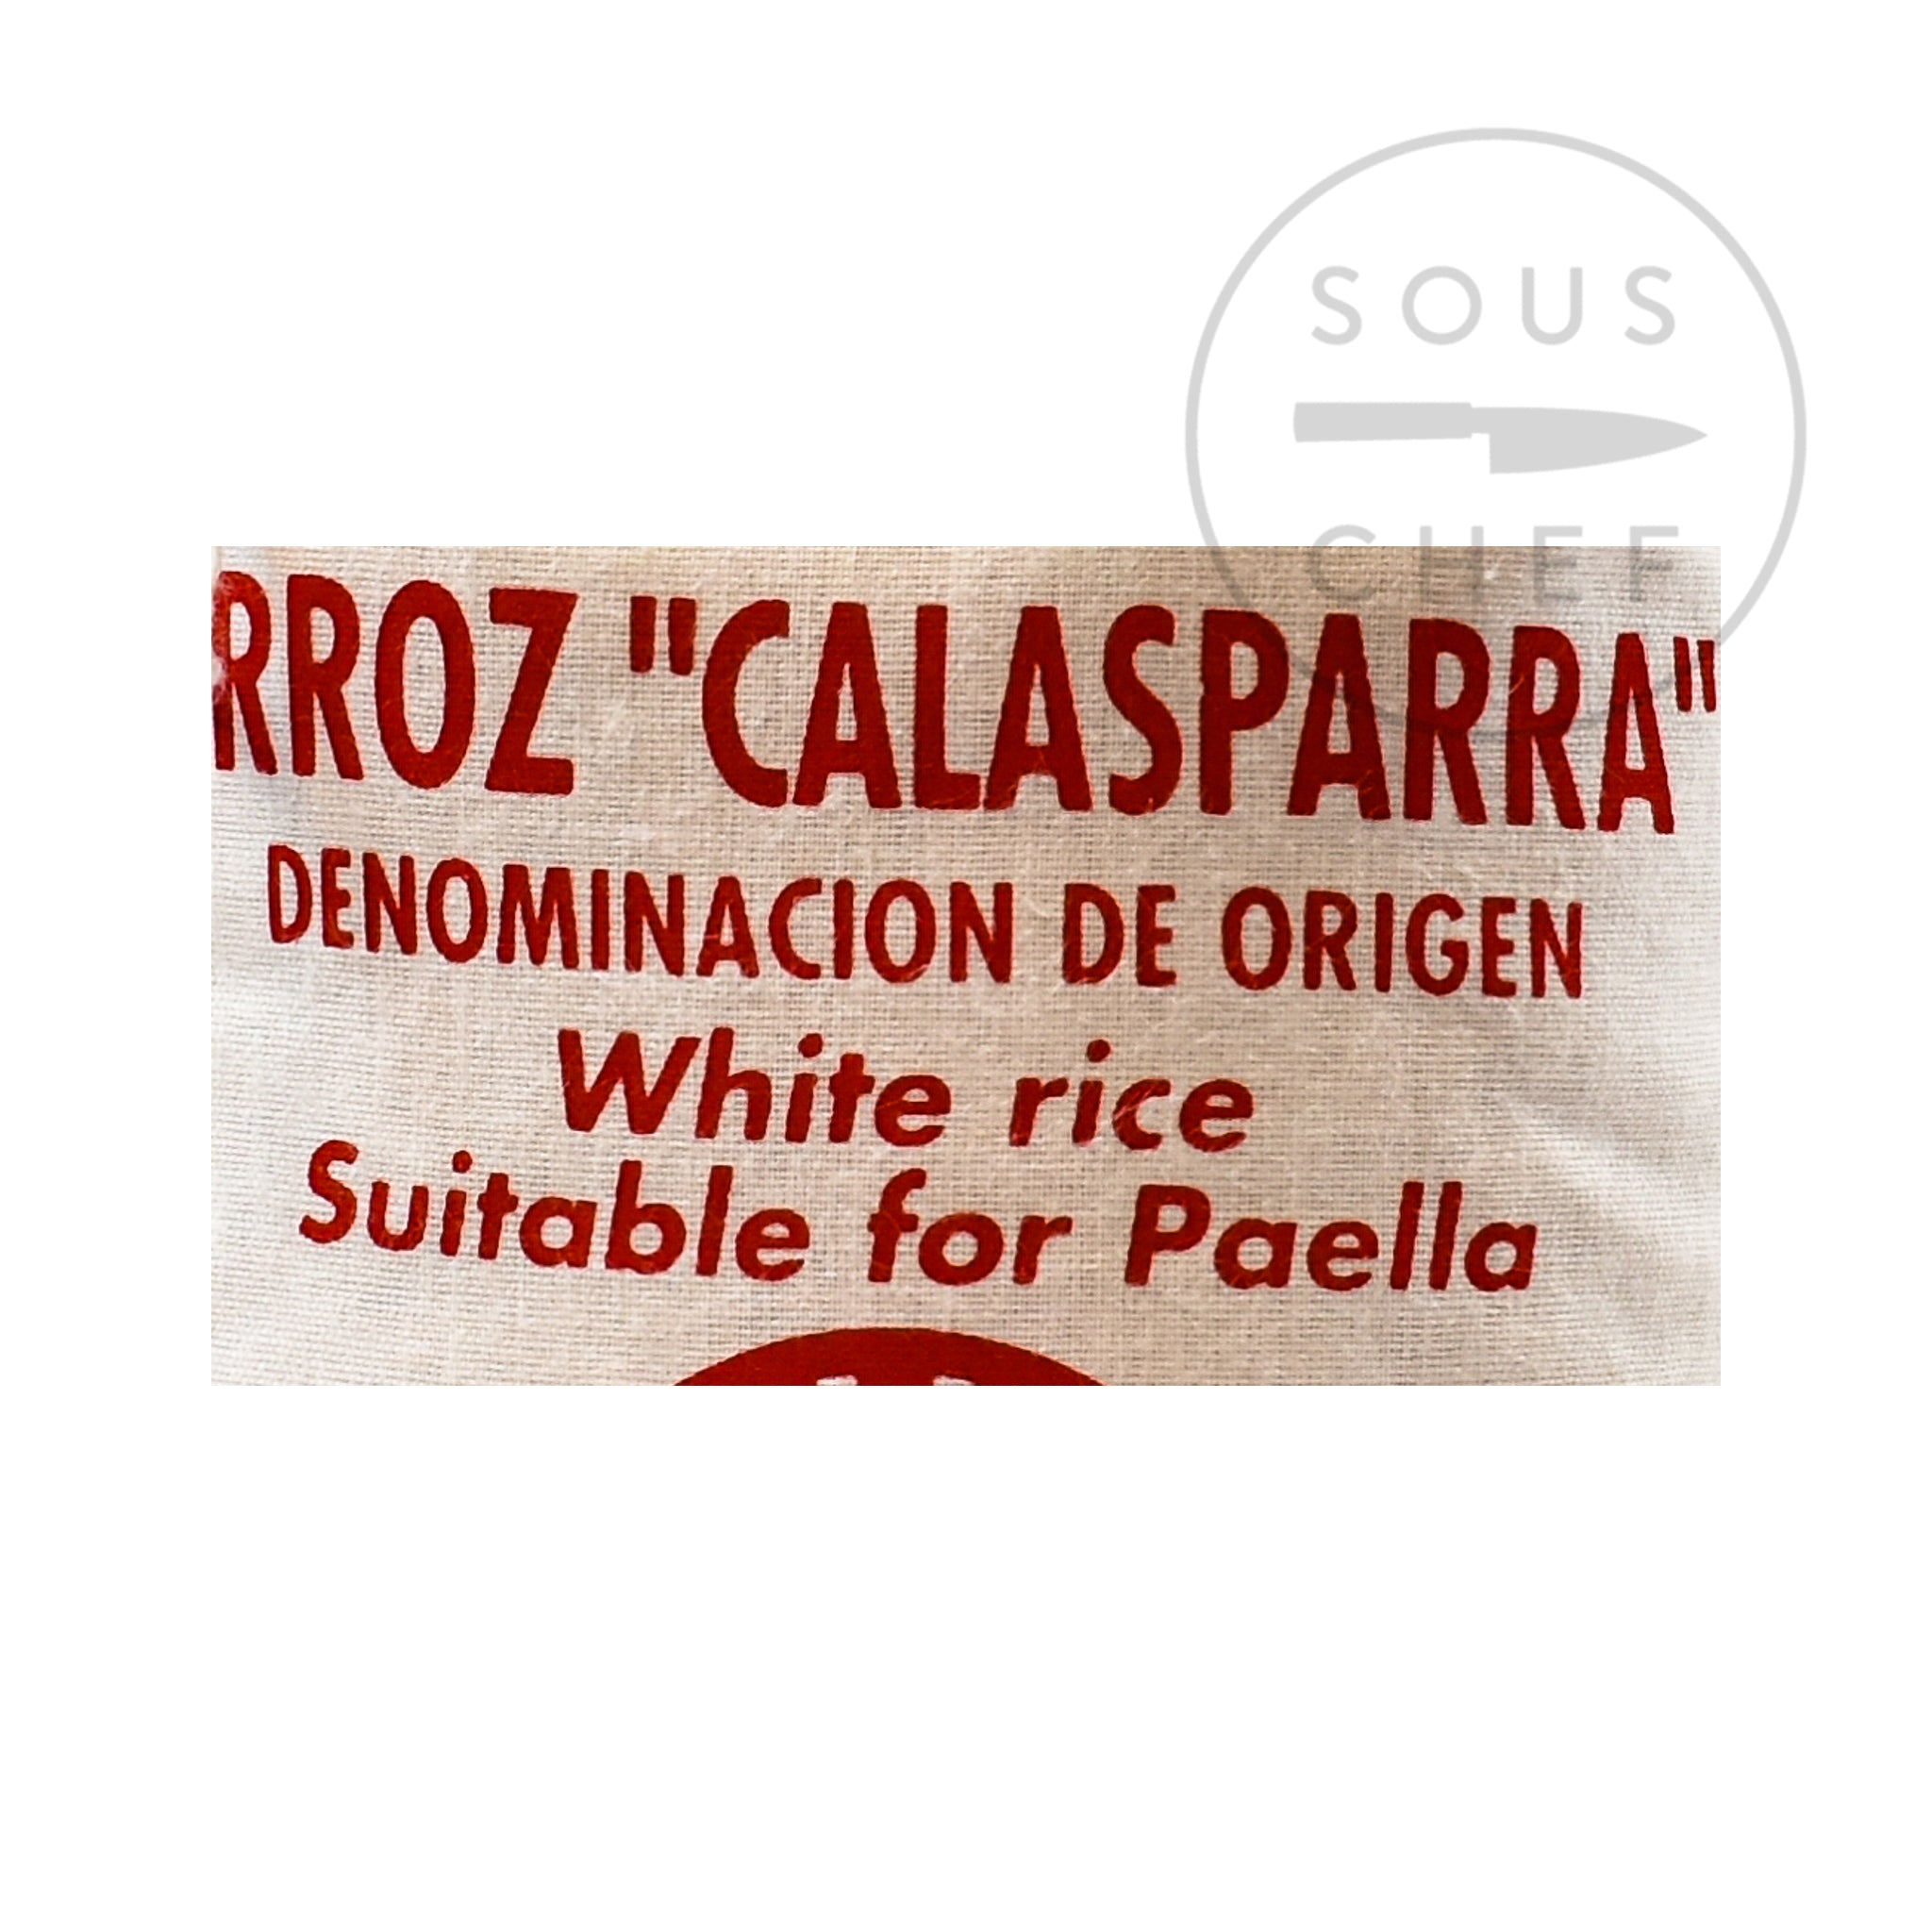 Cooperativa del Campo Calasparra Paella Rice 1kg Ingredients Pasta Rice & Noodles Rice Spanish Food Ingredients Information